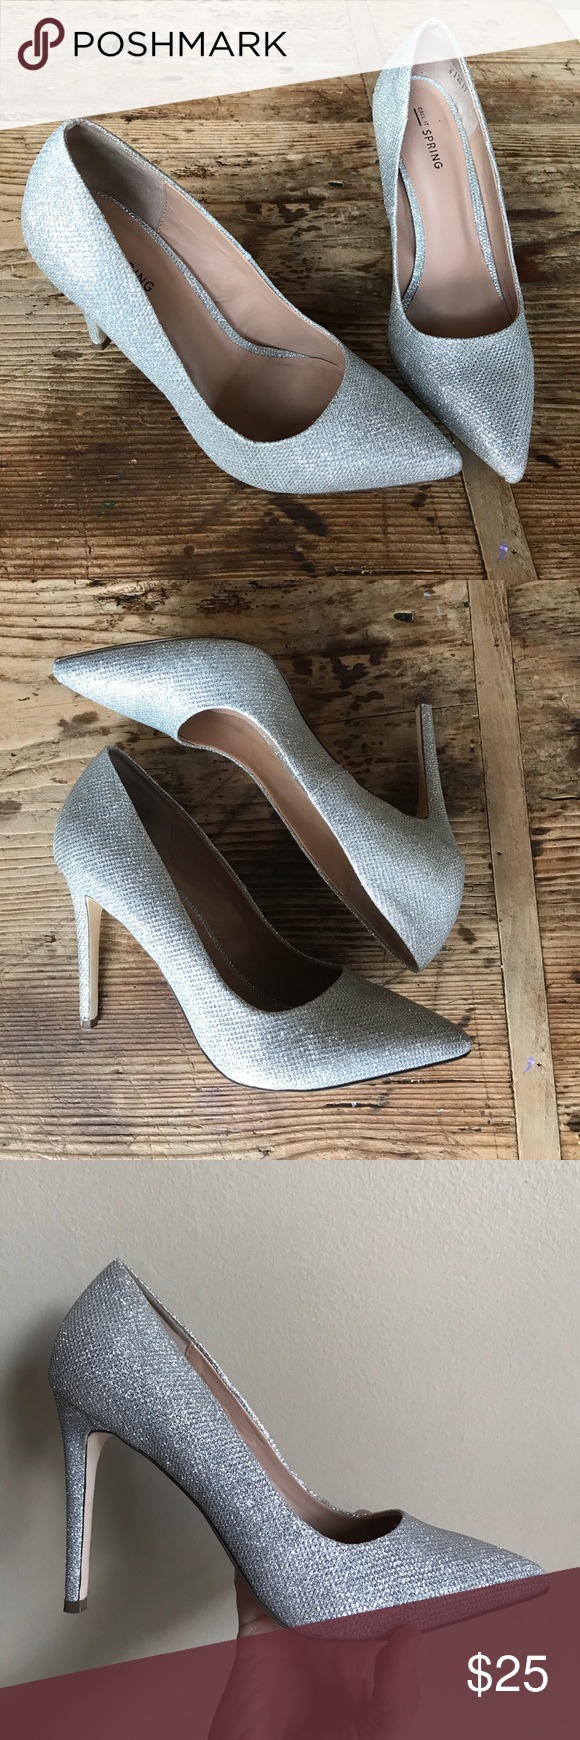 72ec276e0a750 Call it Spring silver sparkly heels size 9 Gorgeous and ready for Prom or  any dressy